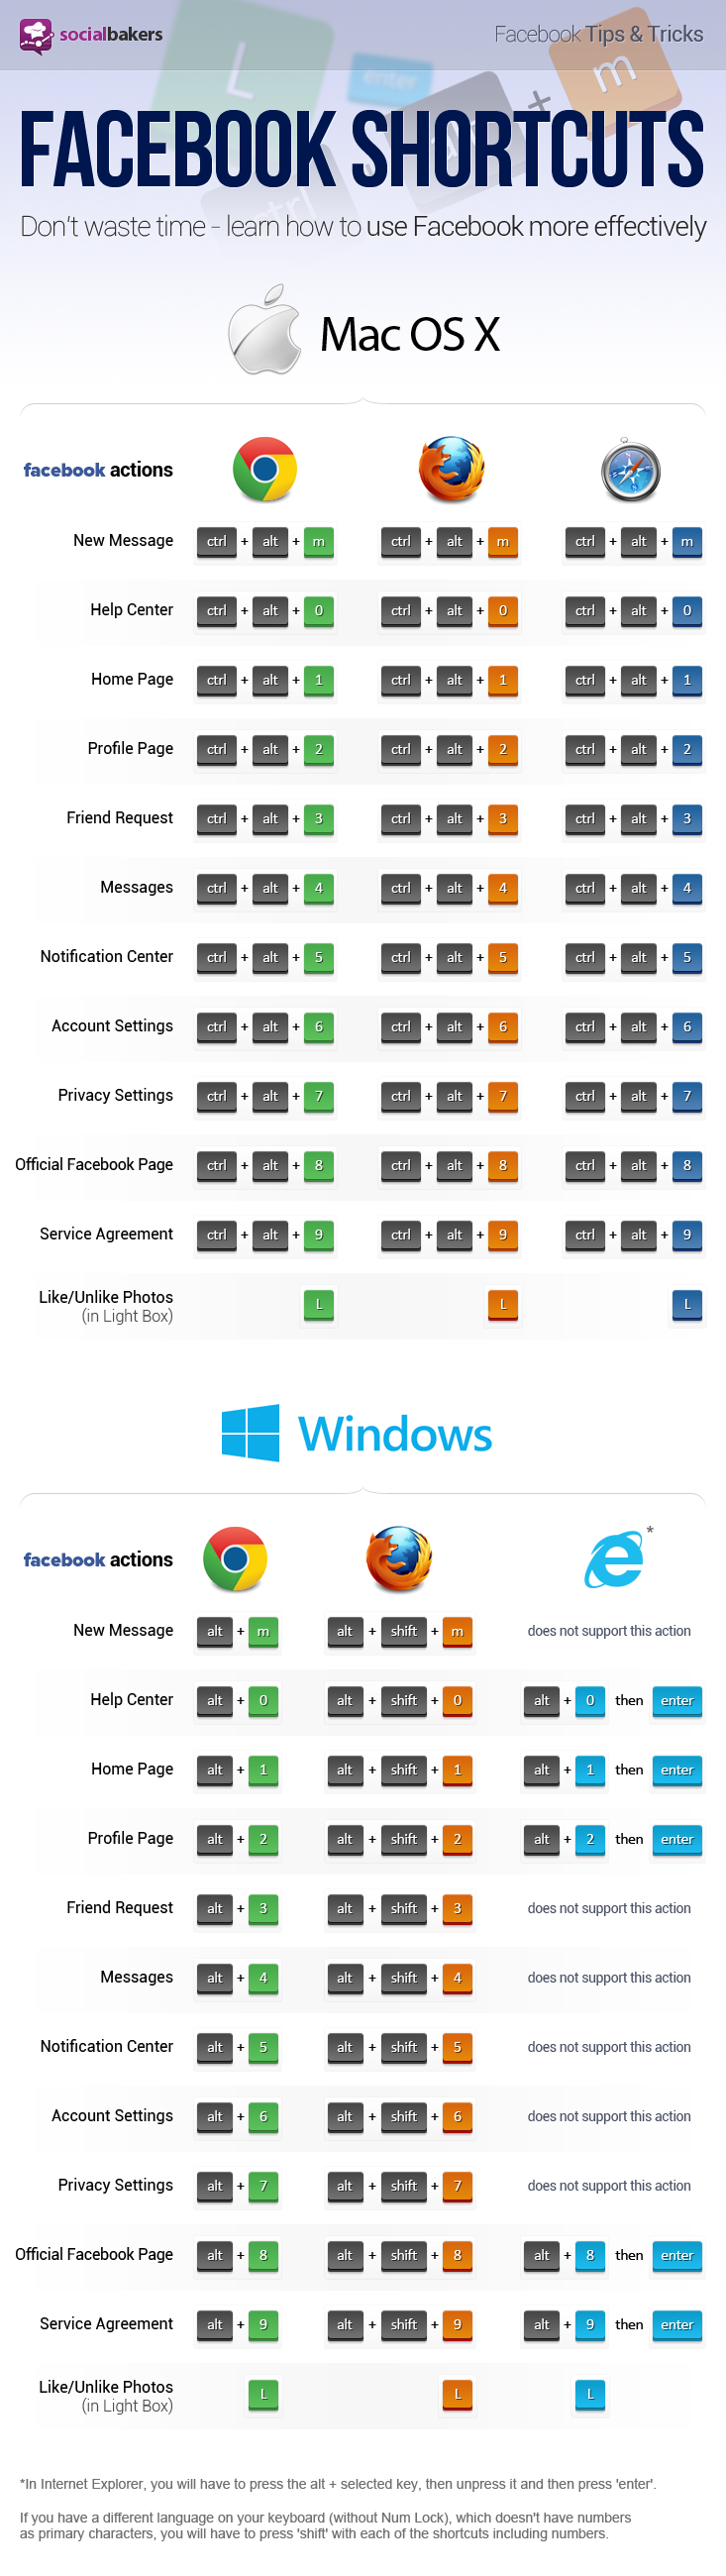 Facebook Tips And Tricks Keyboard Shortcuts Infographic - The Chris Voss Show